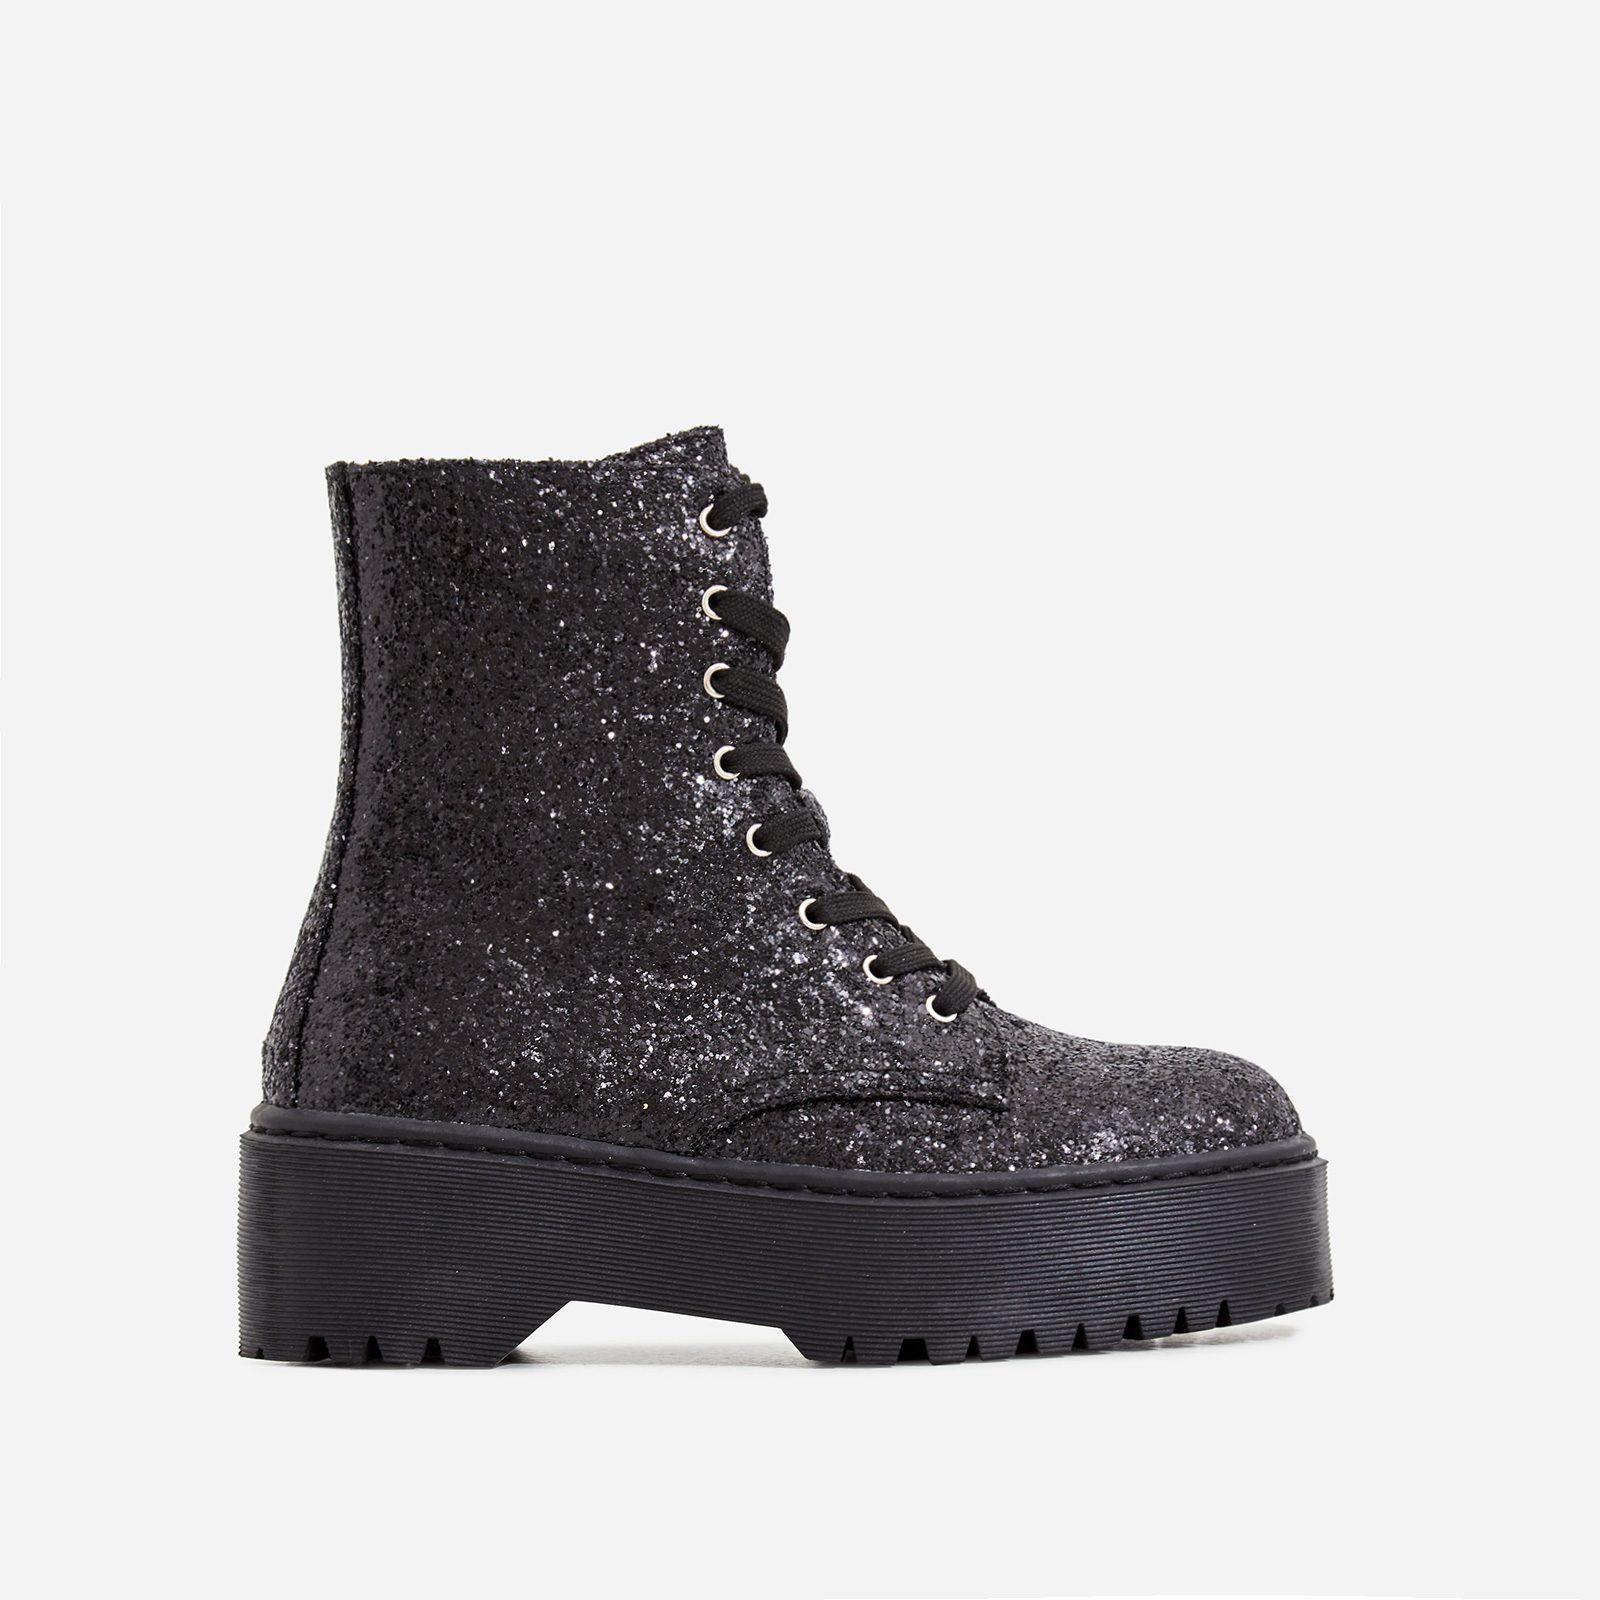 Poppin Lace Up Ankle Biker Boot In Black Glitter